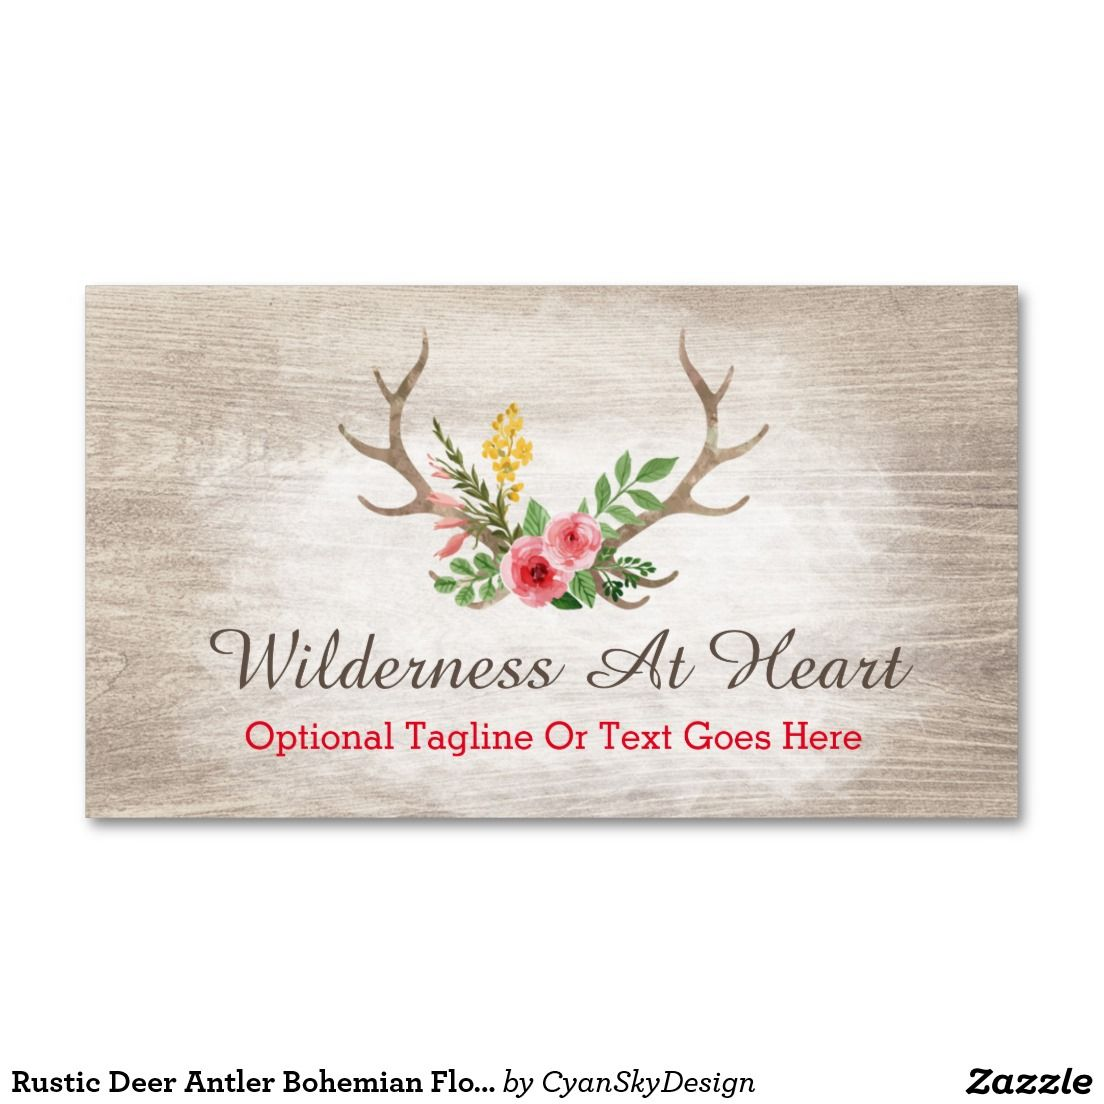 Rustic deer antler bohemian floral watercolor wood business card reheart Image collections